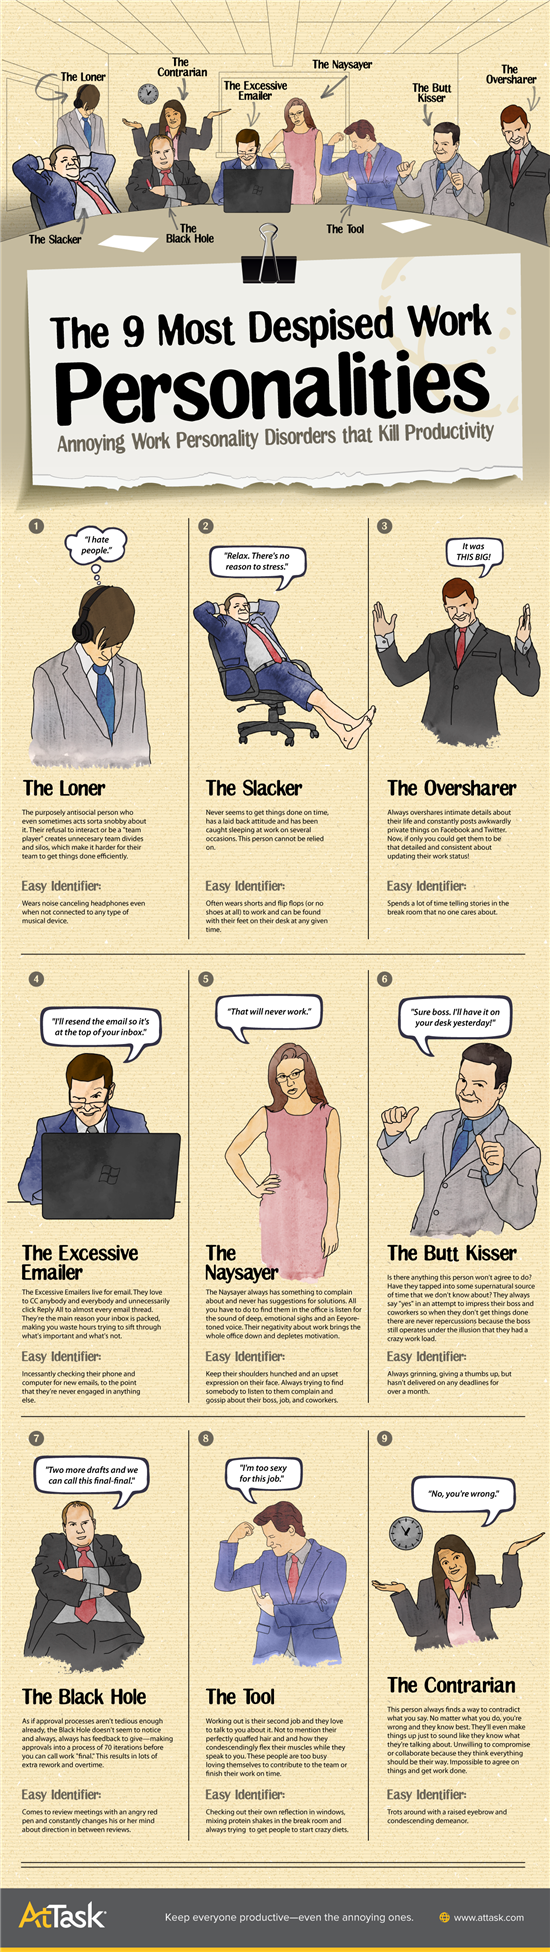 infographic, Office Space